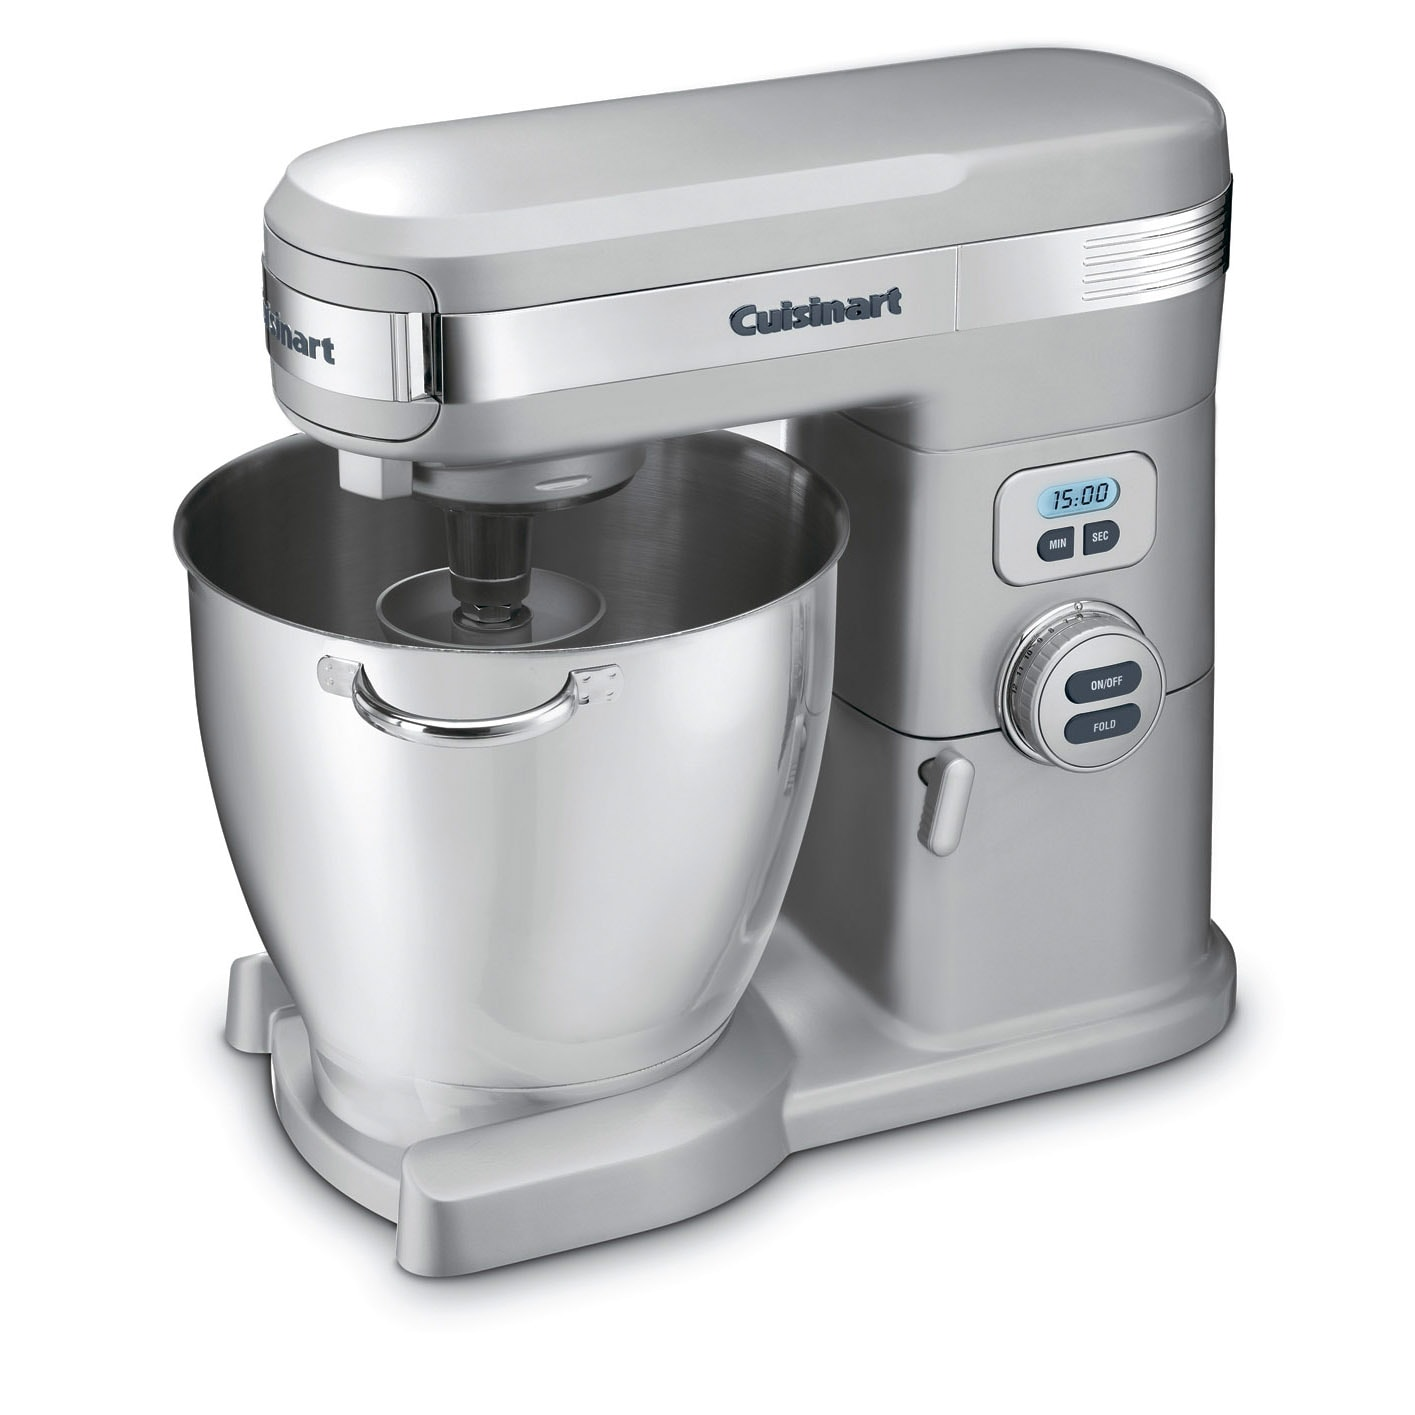 Cuisinart SM-70BC Brushed Chrome 7-quart Stand Mixer, Sil...